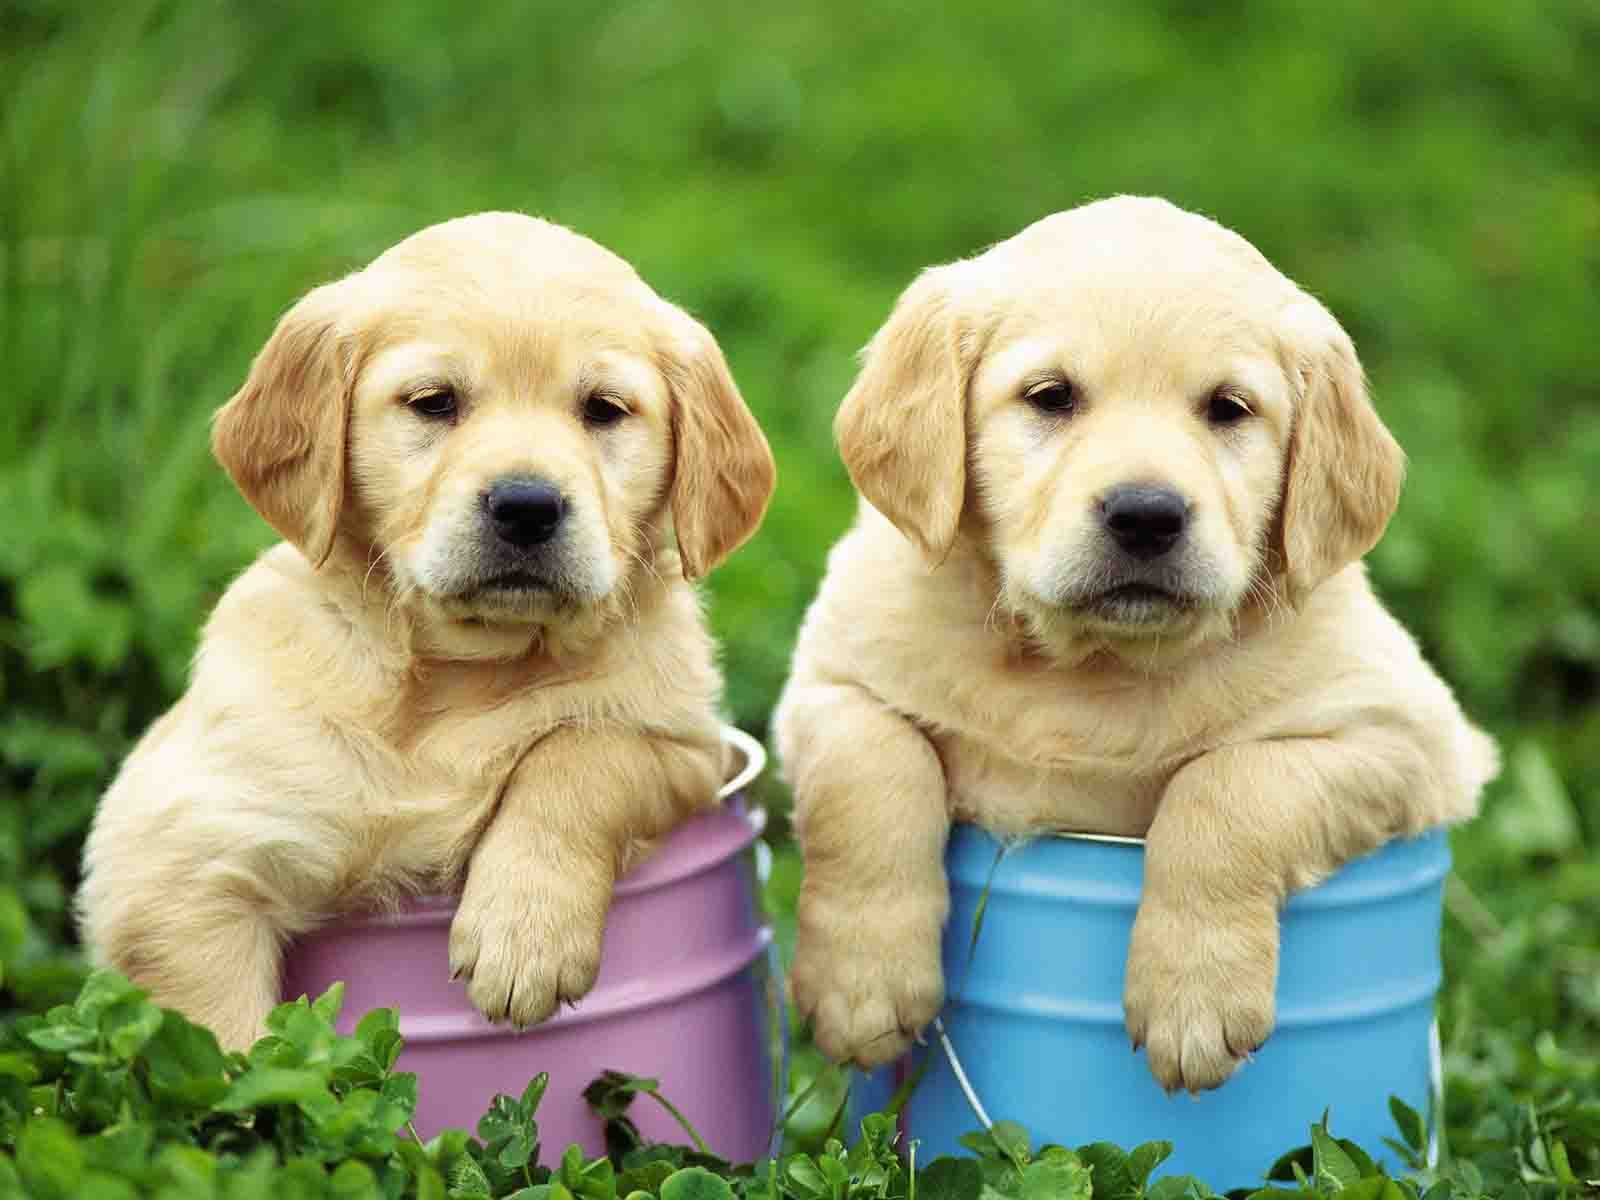 HD WALLPAPERS: CUTE PUPPY HD WALLPAPERS